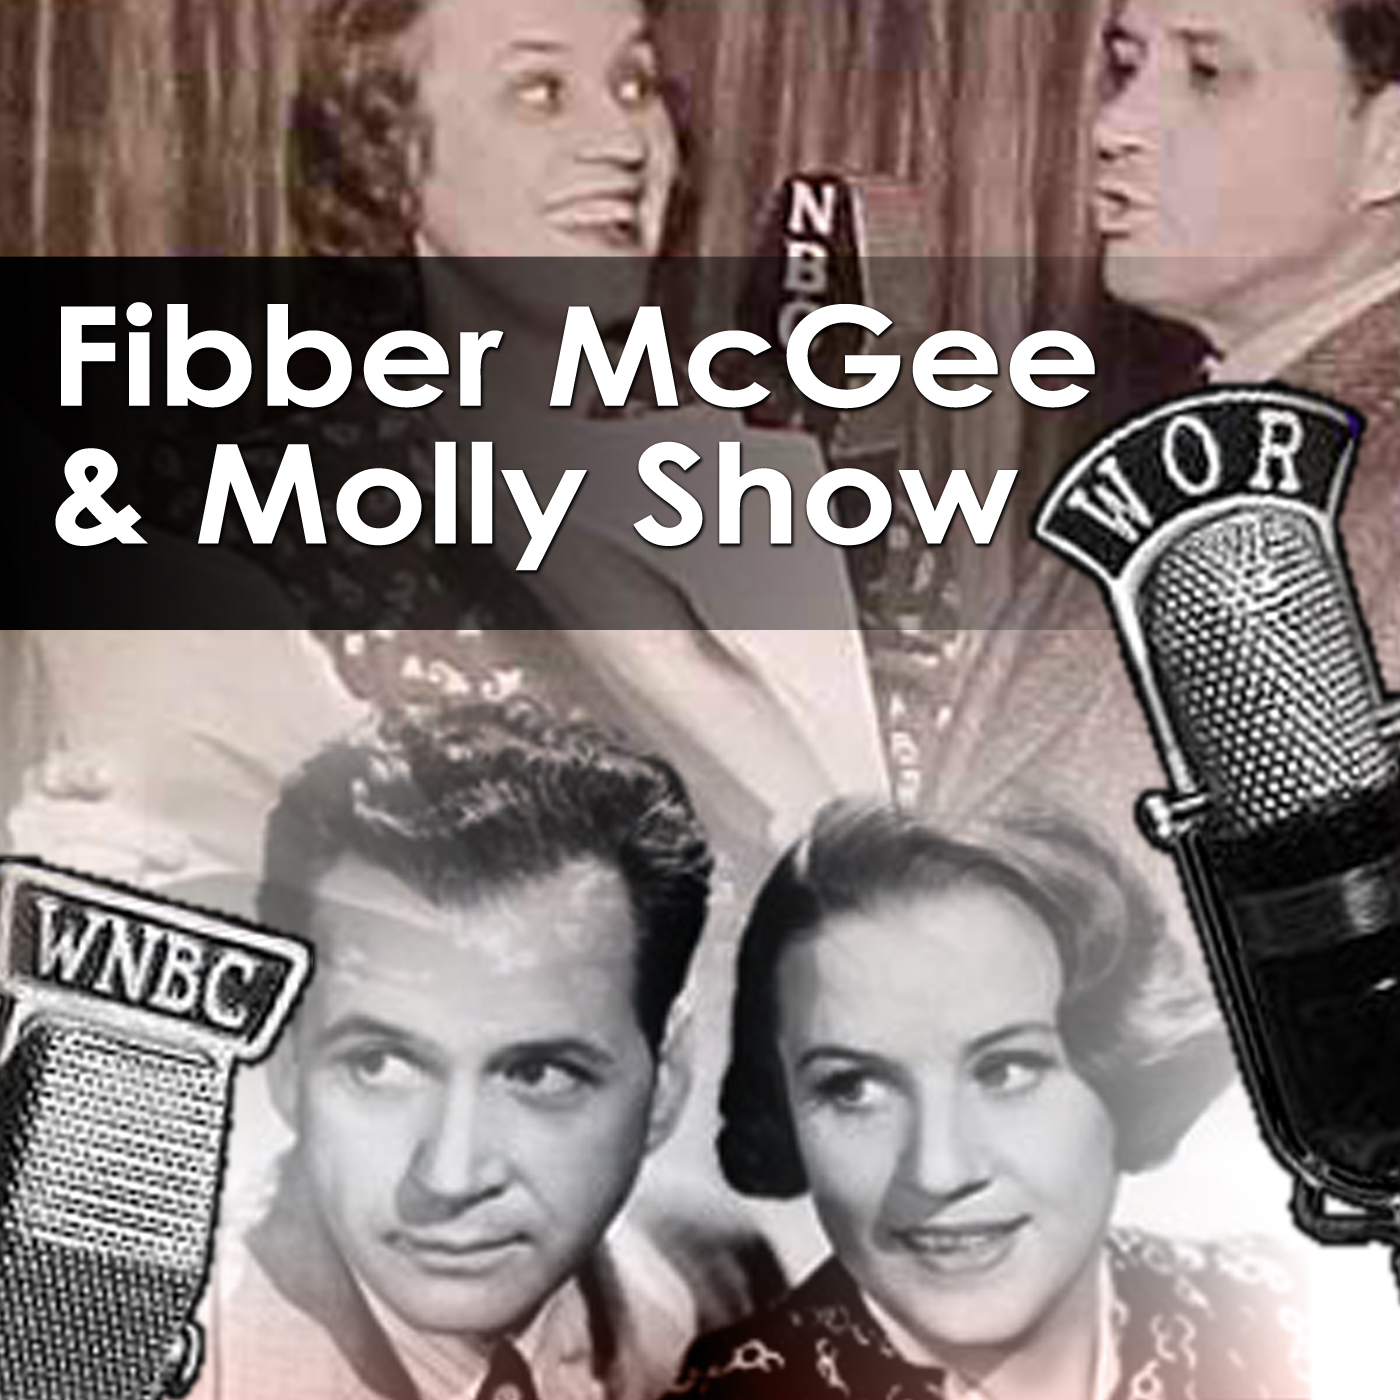 Fibber McGee and Molly - Wikipedia